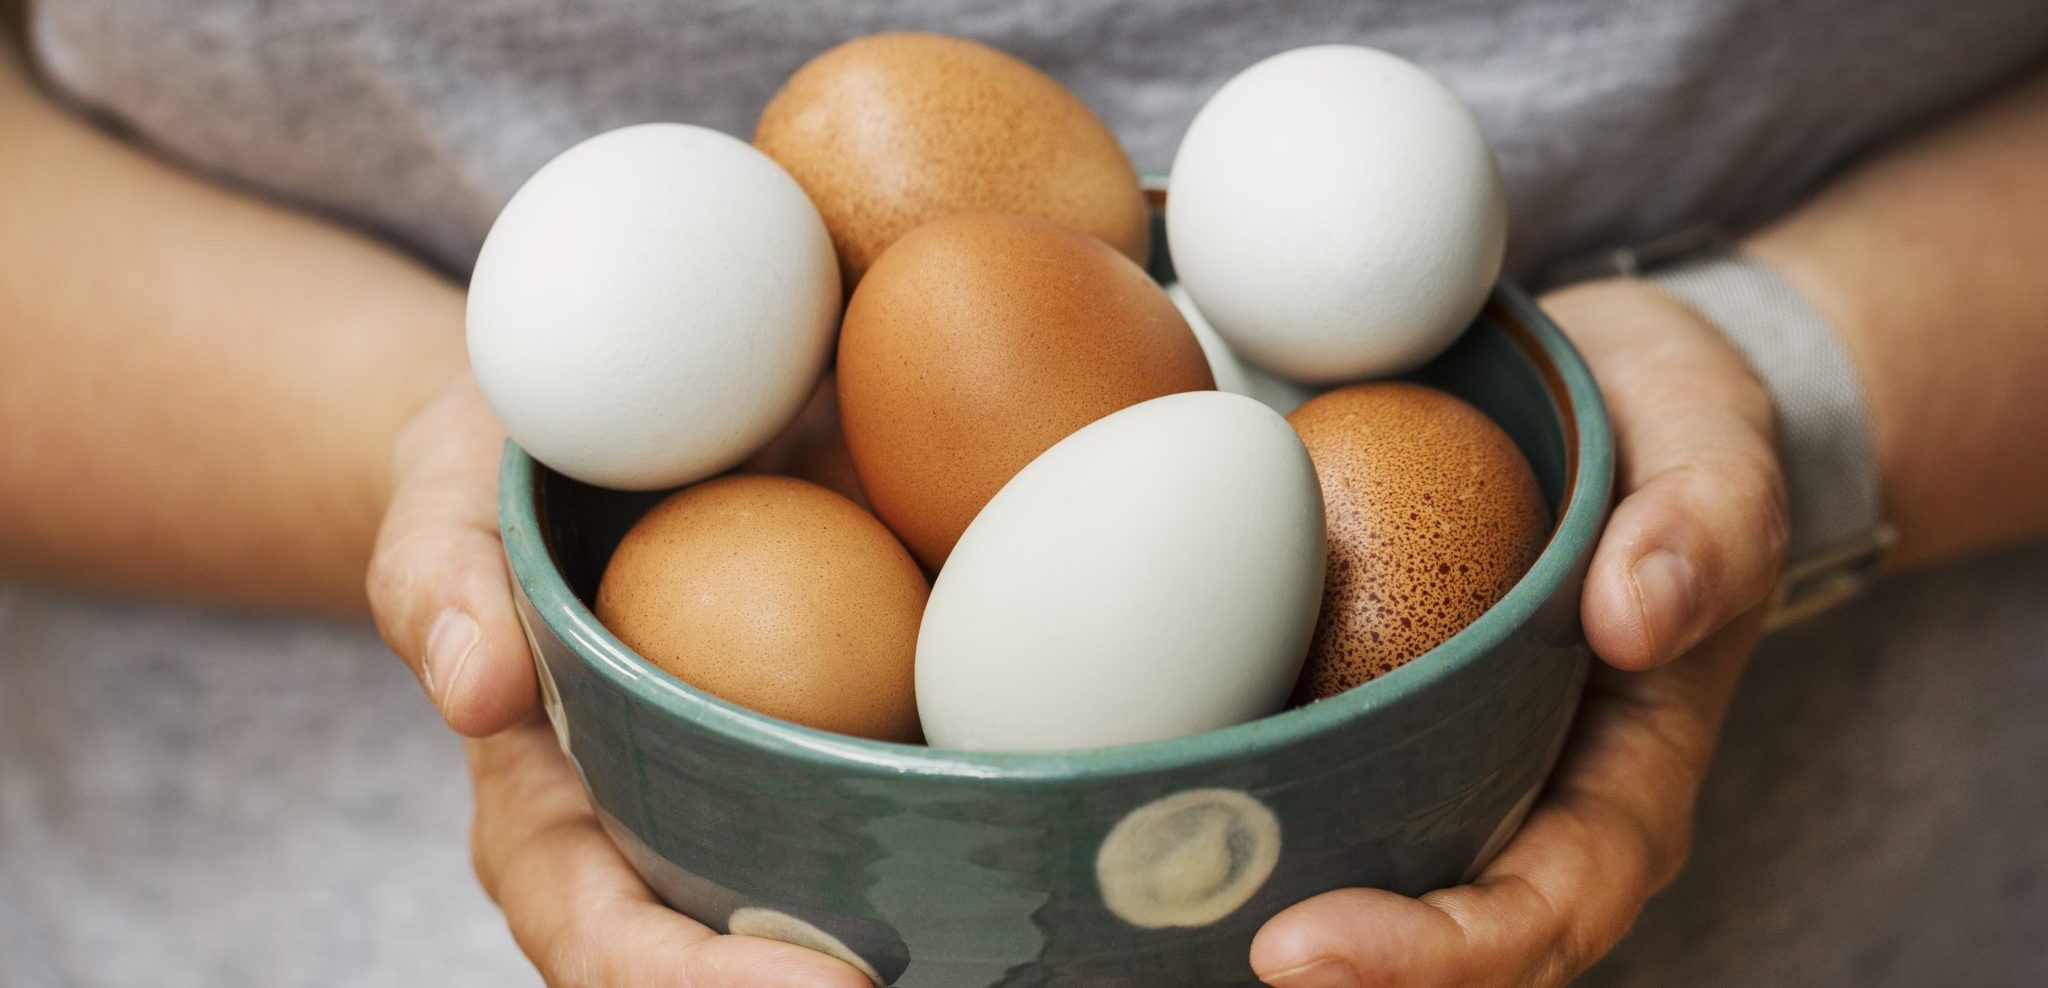 Can Vegetarians Eat Eggs? Short Q&A